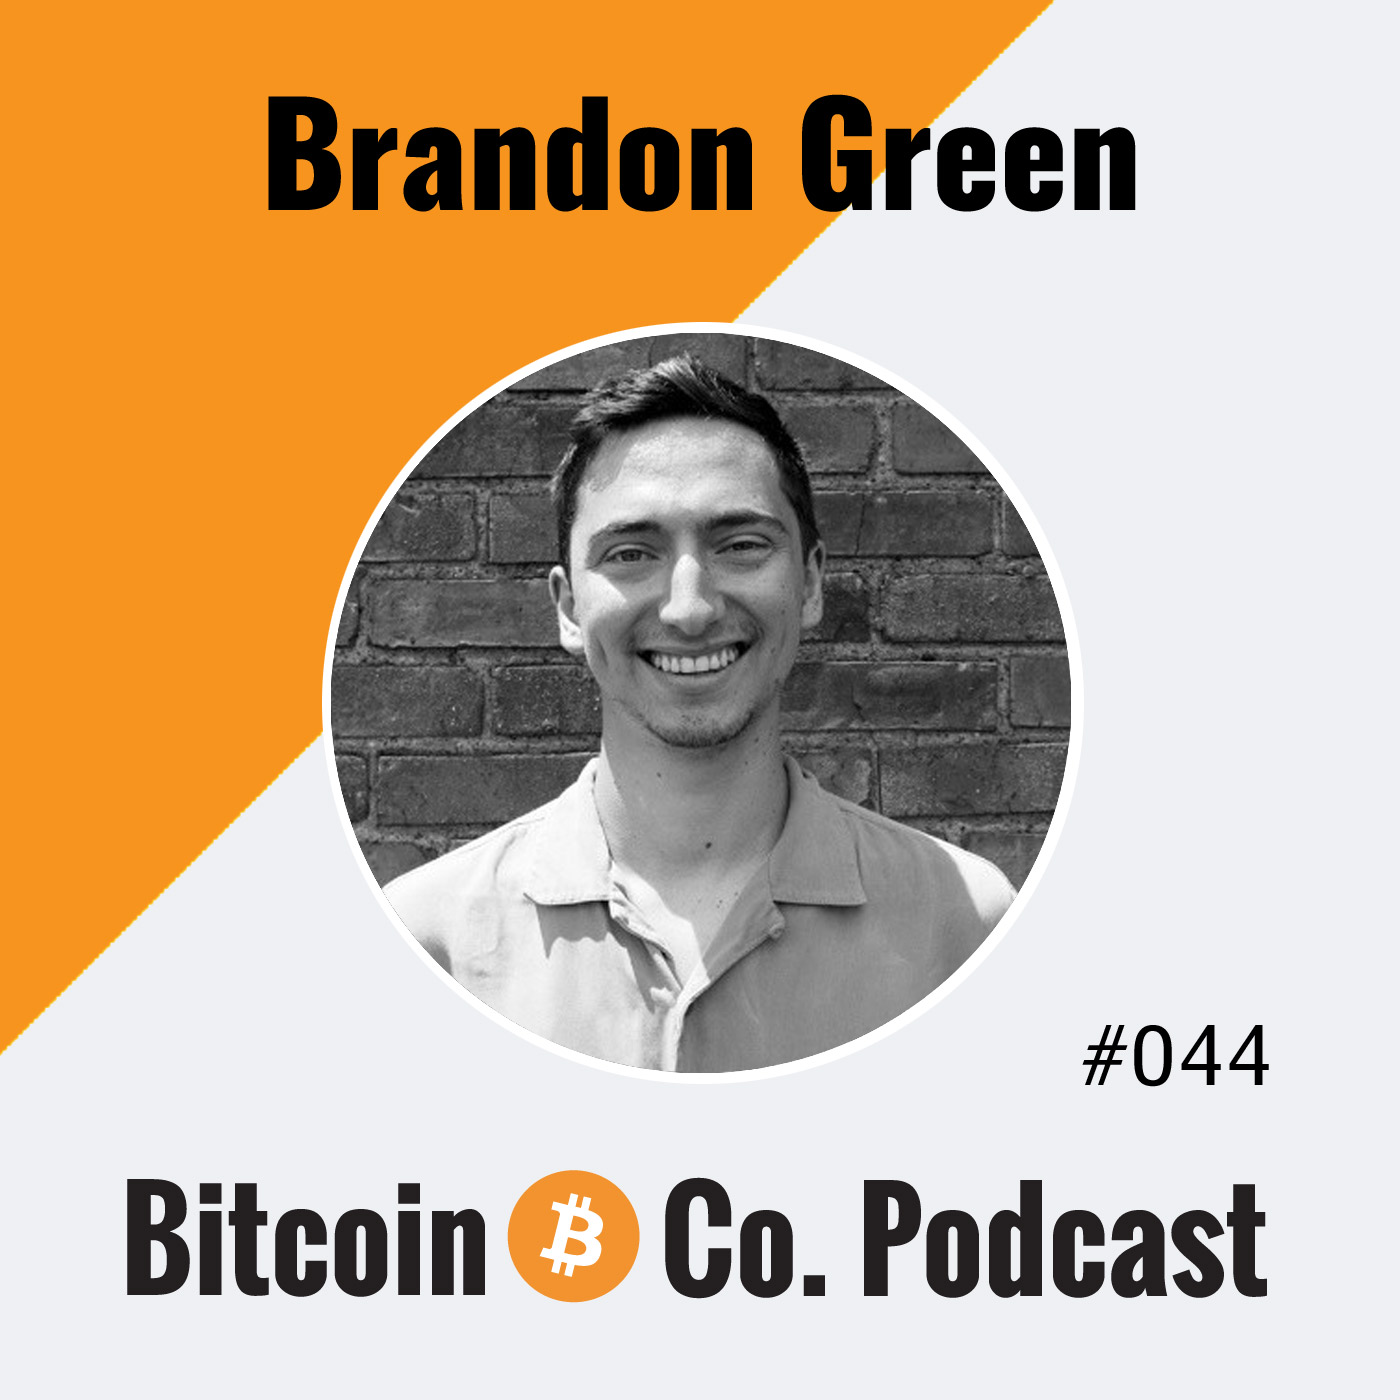 Brandon Green: What to Expect From Bitcoin (In) 2020